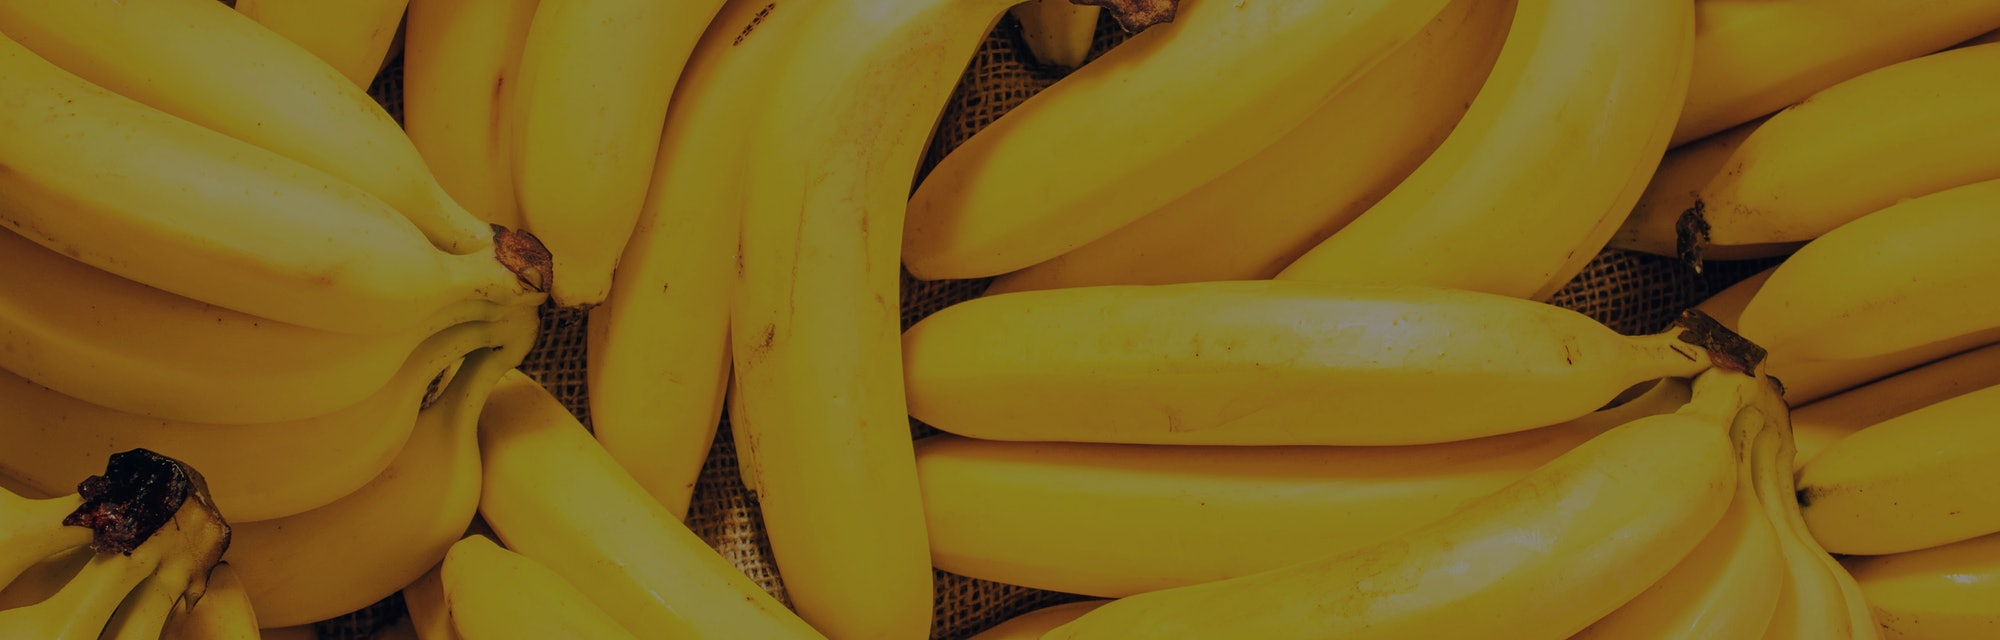 Bananas in a pile. Bananas can help acid reflux